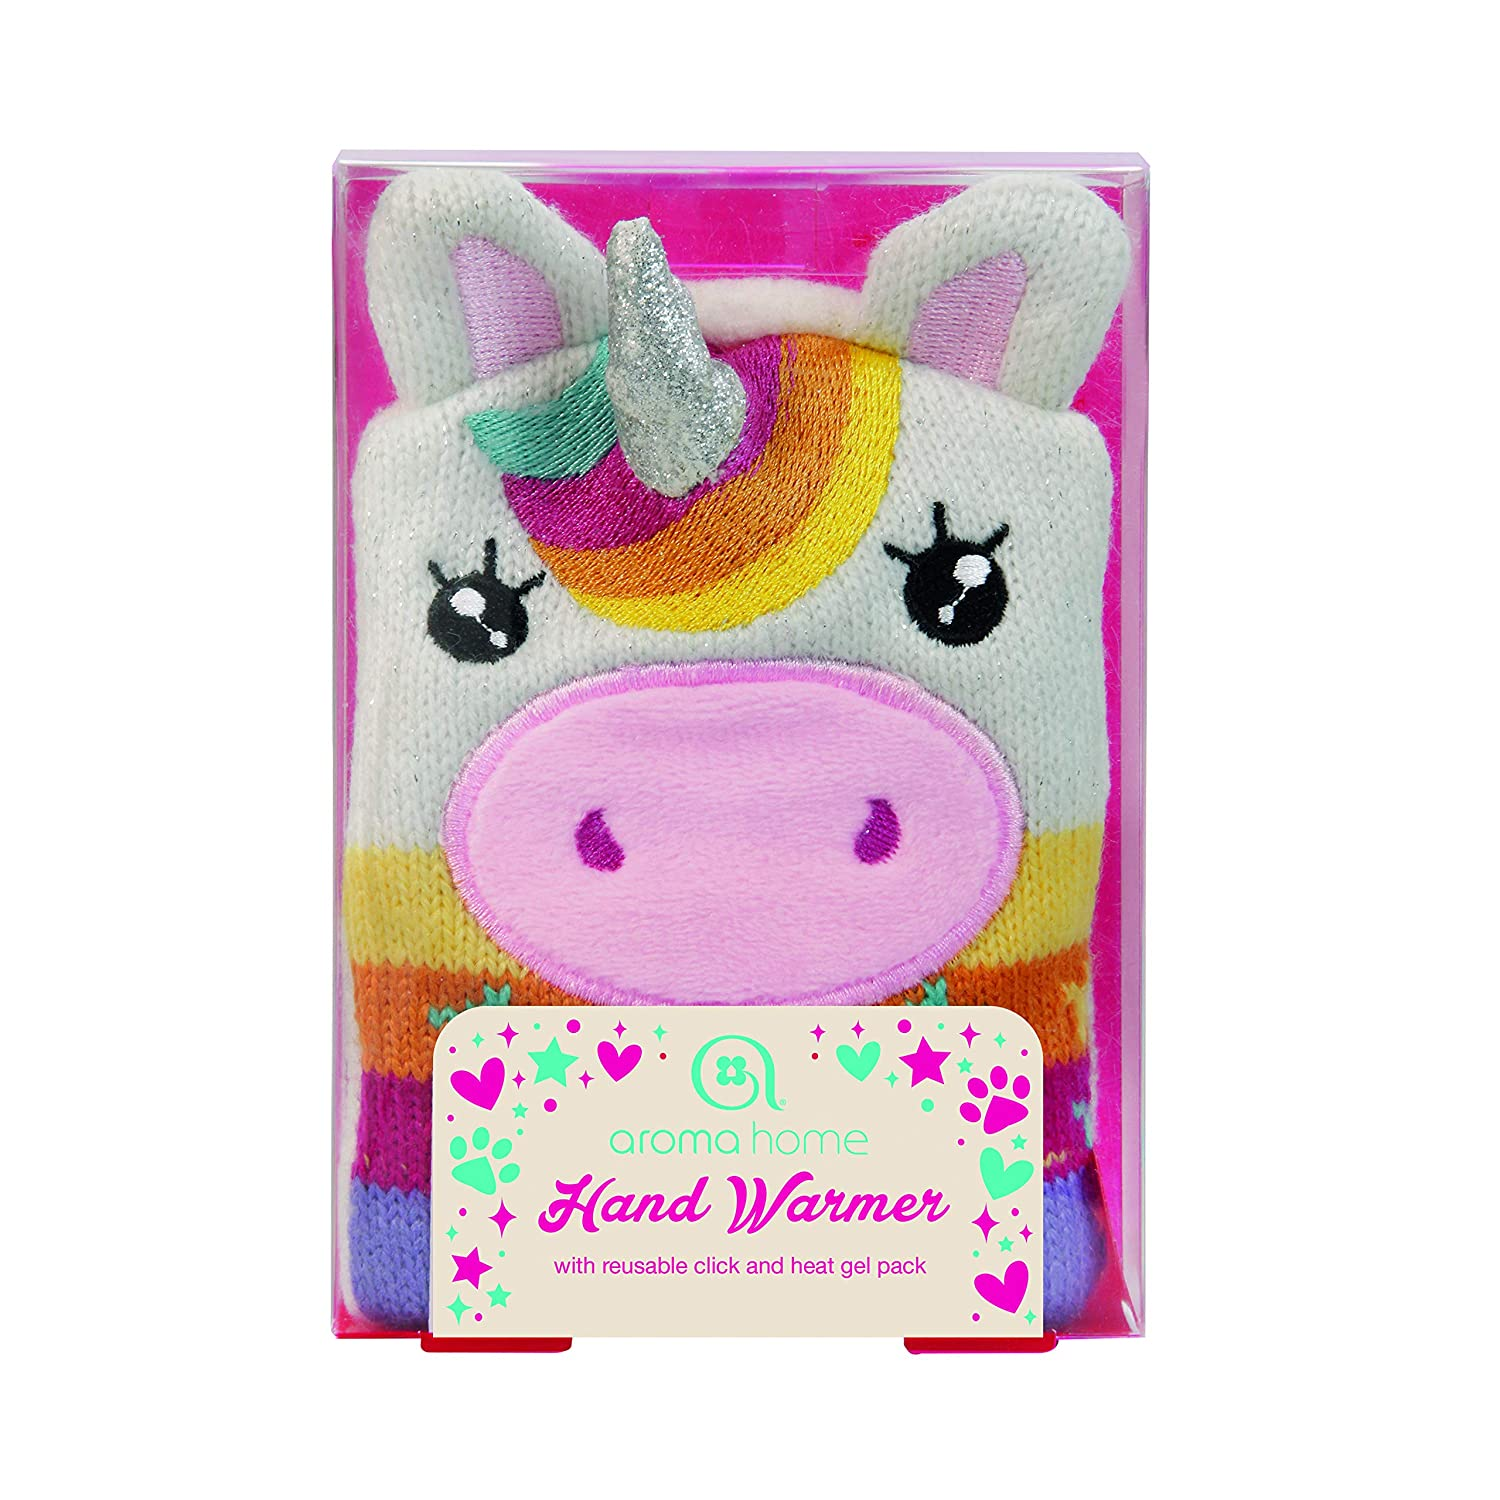 Aroma Home Novelty Knitted Reusable Unicorn Single Hand Warmer